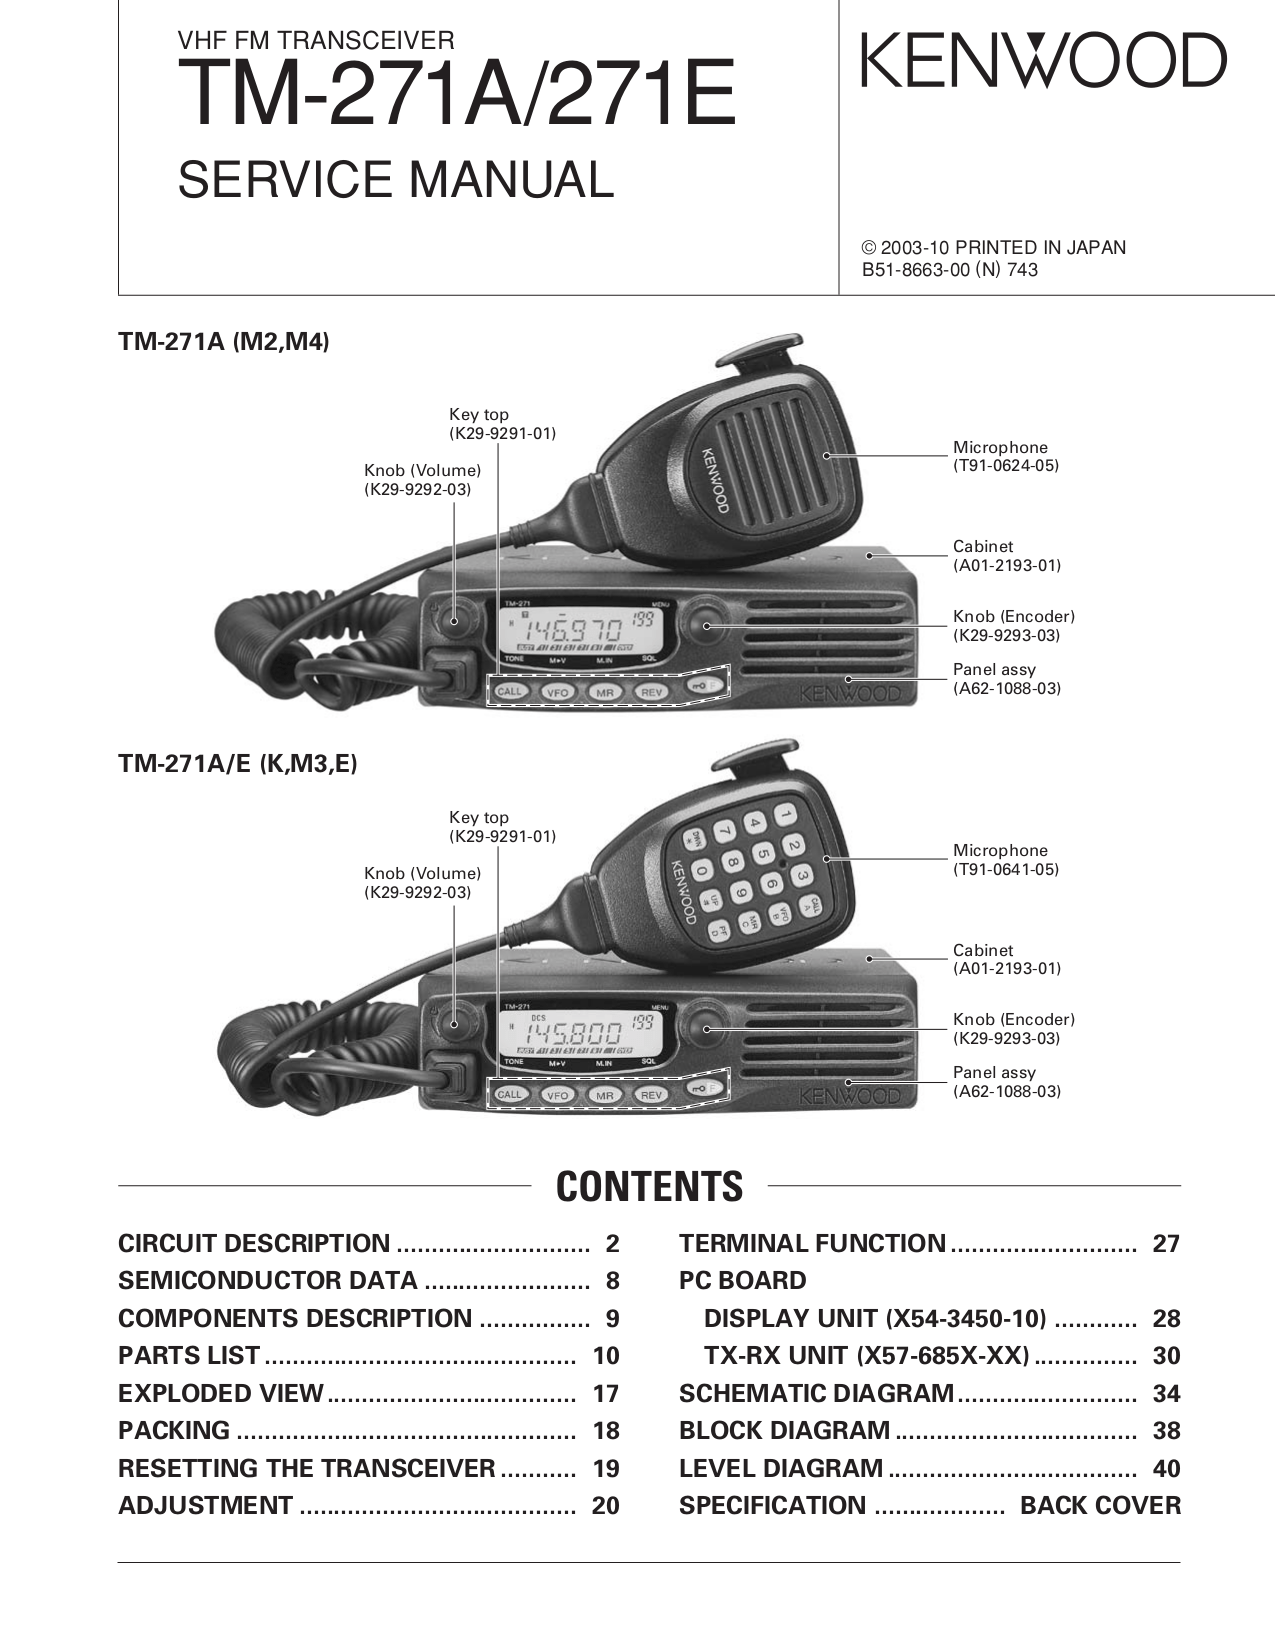 Download free pdf for Kenwood KDC-222 Car Receiver manual